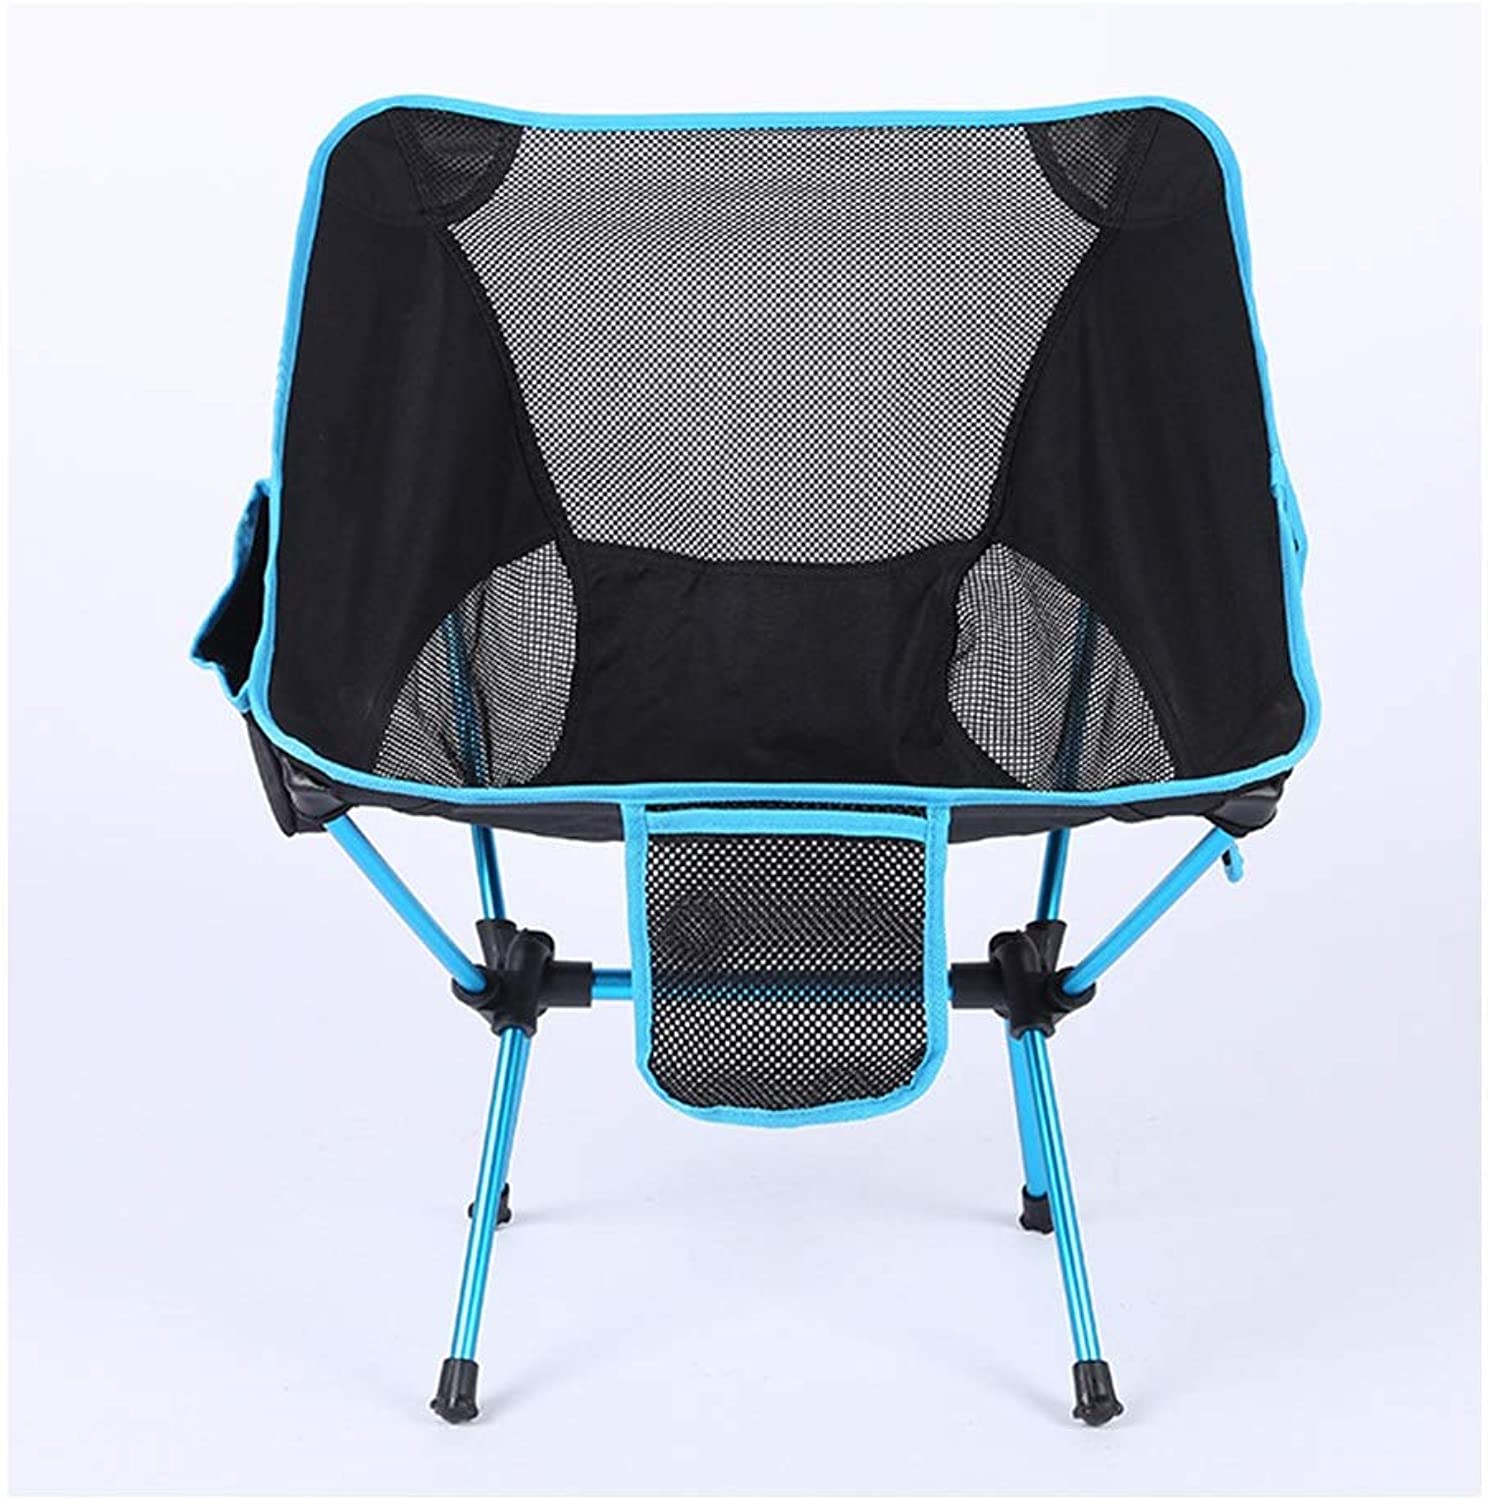 Folding Chair Outdoor Lightweight Portable Camping Picnic Beach Fishing Moon Stool Household Lounge Chairs